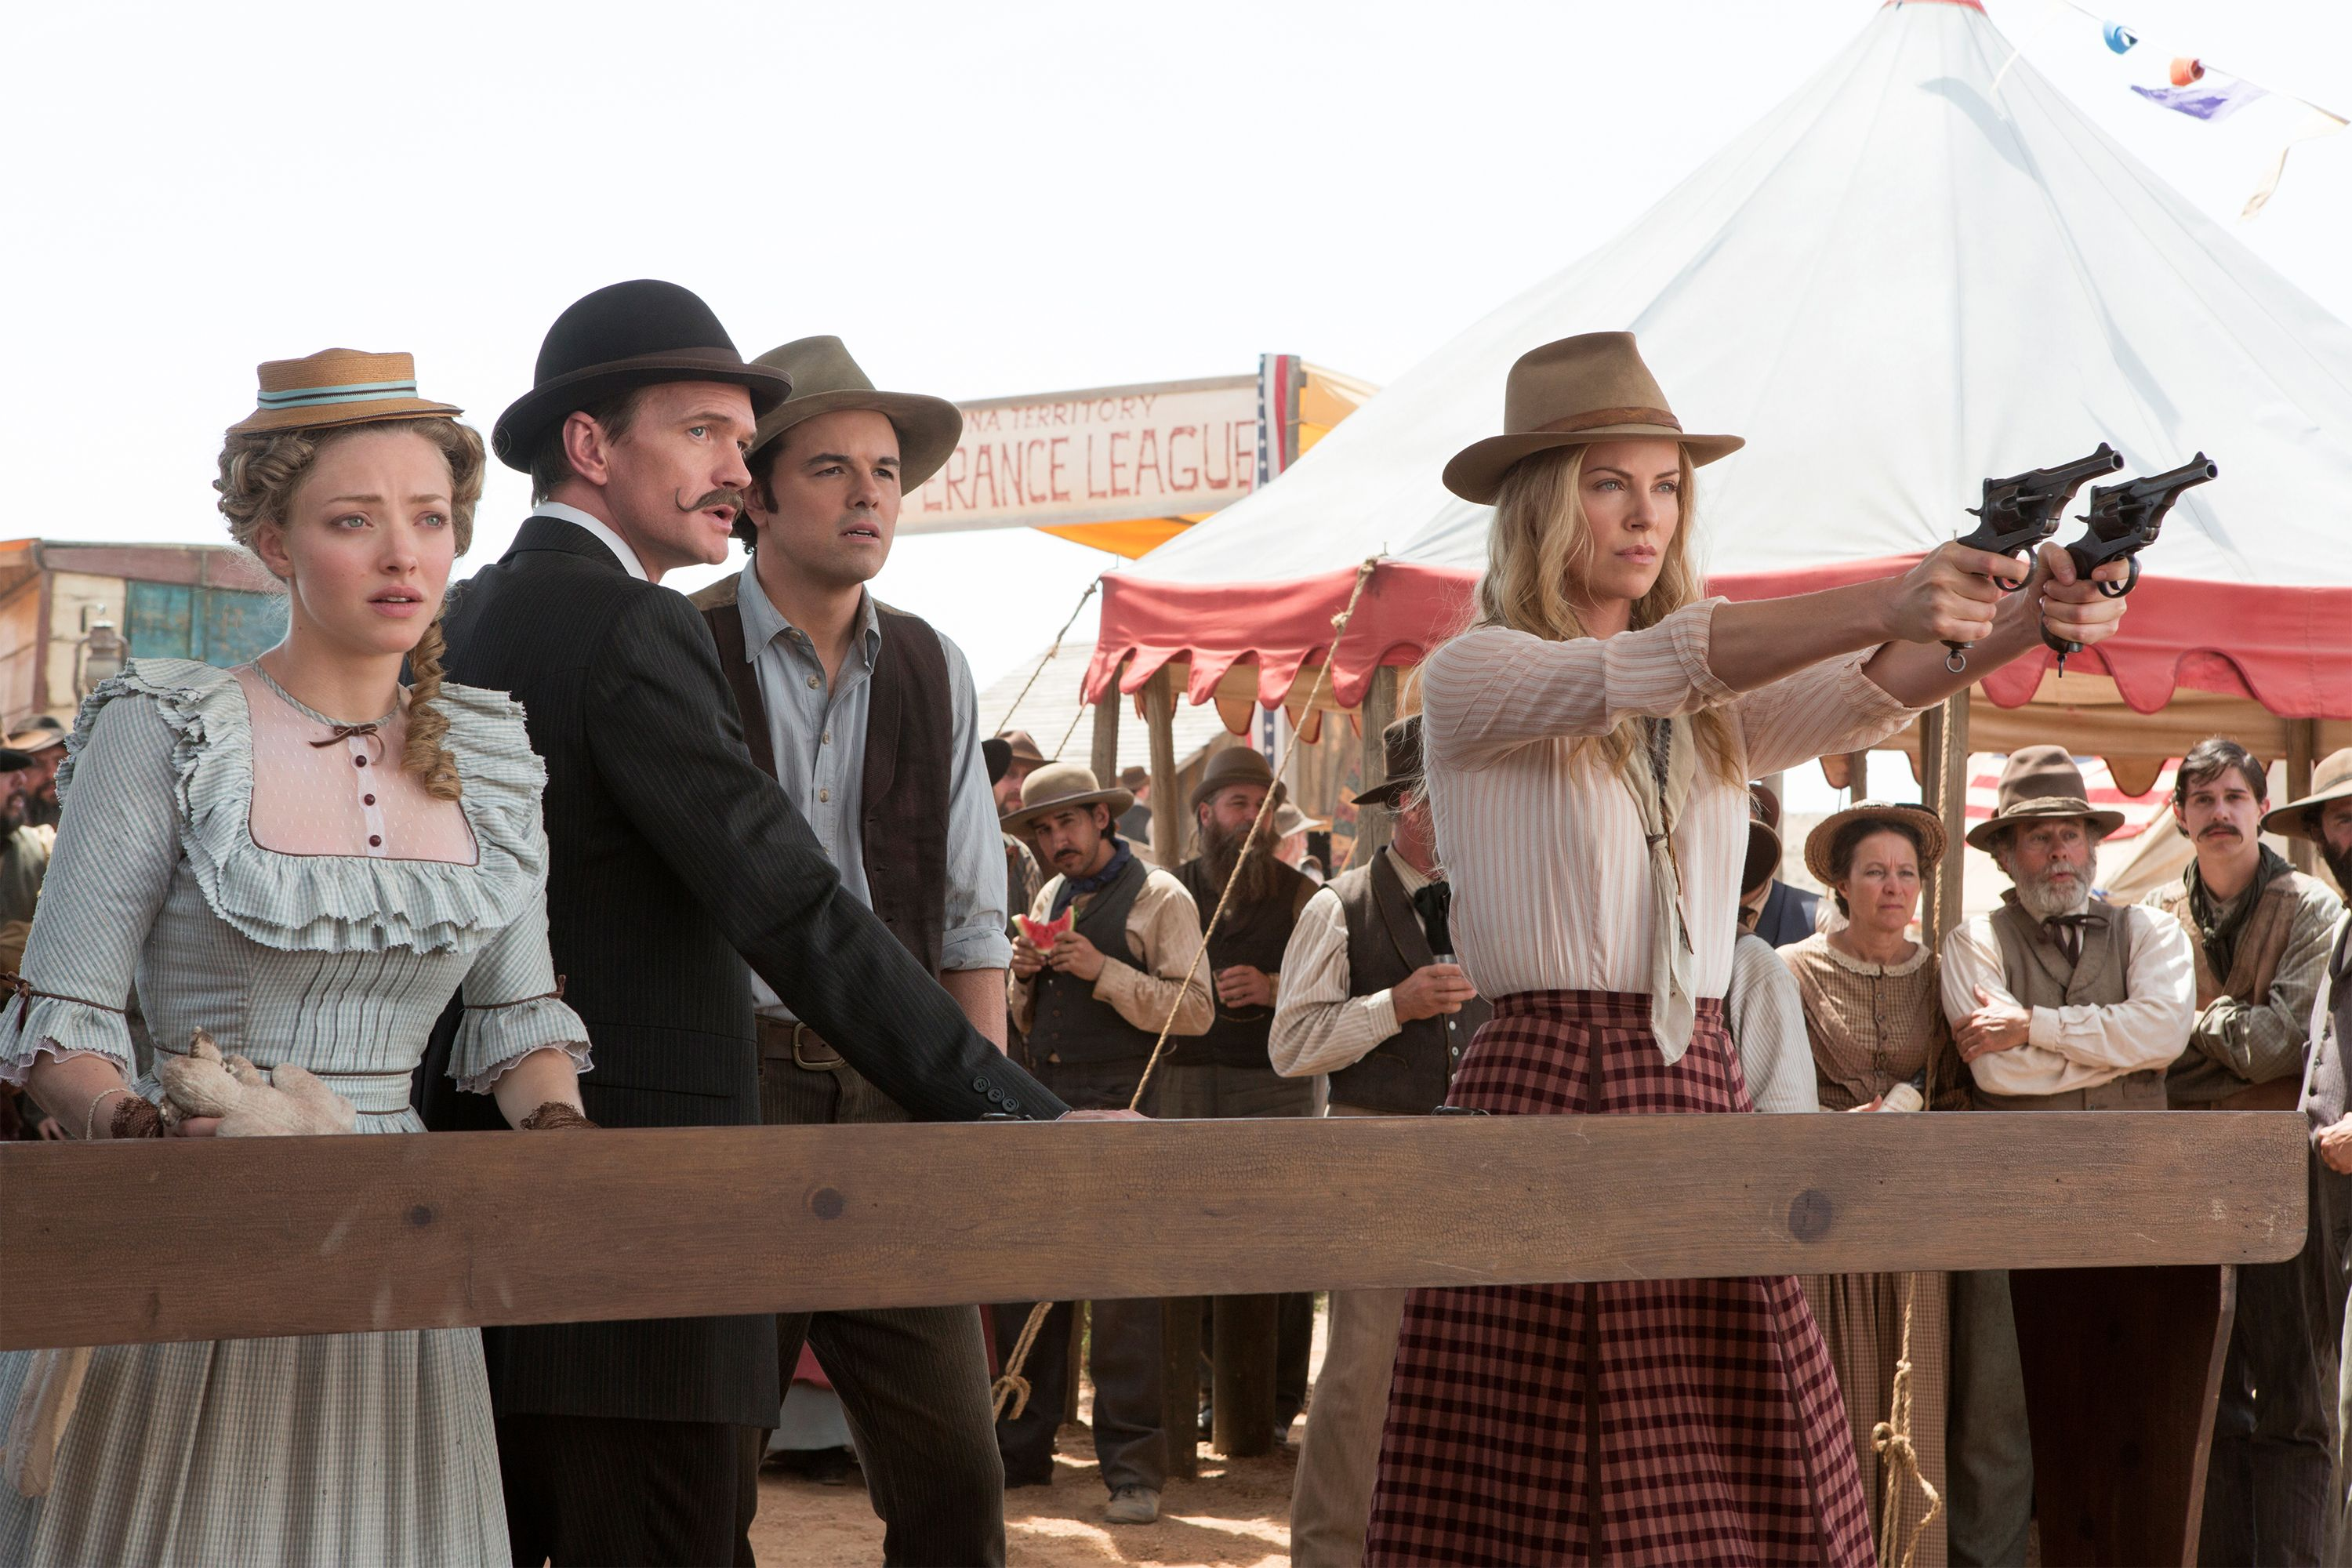 hilarious-red-band-trailer-for-a-million-ways-to-die-in-the-west